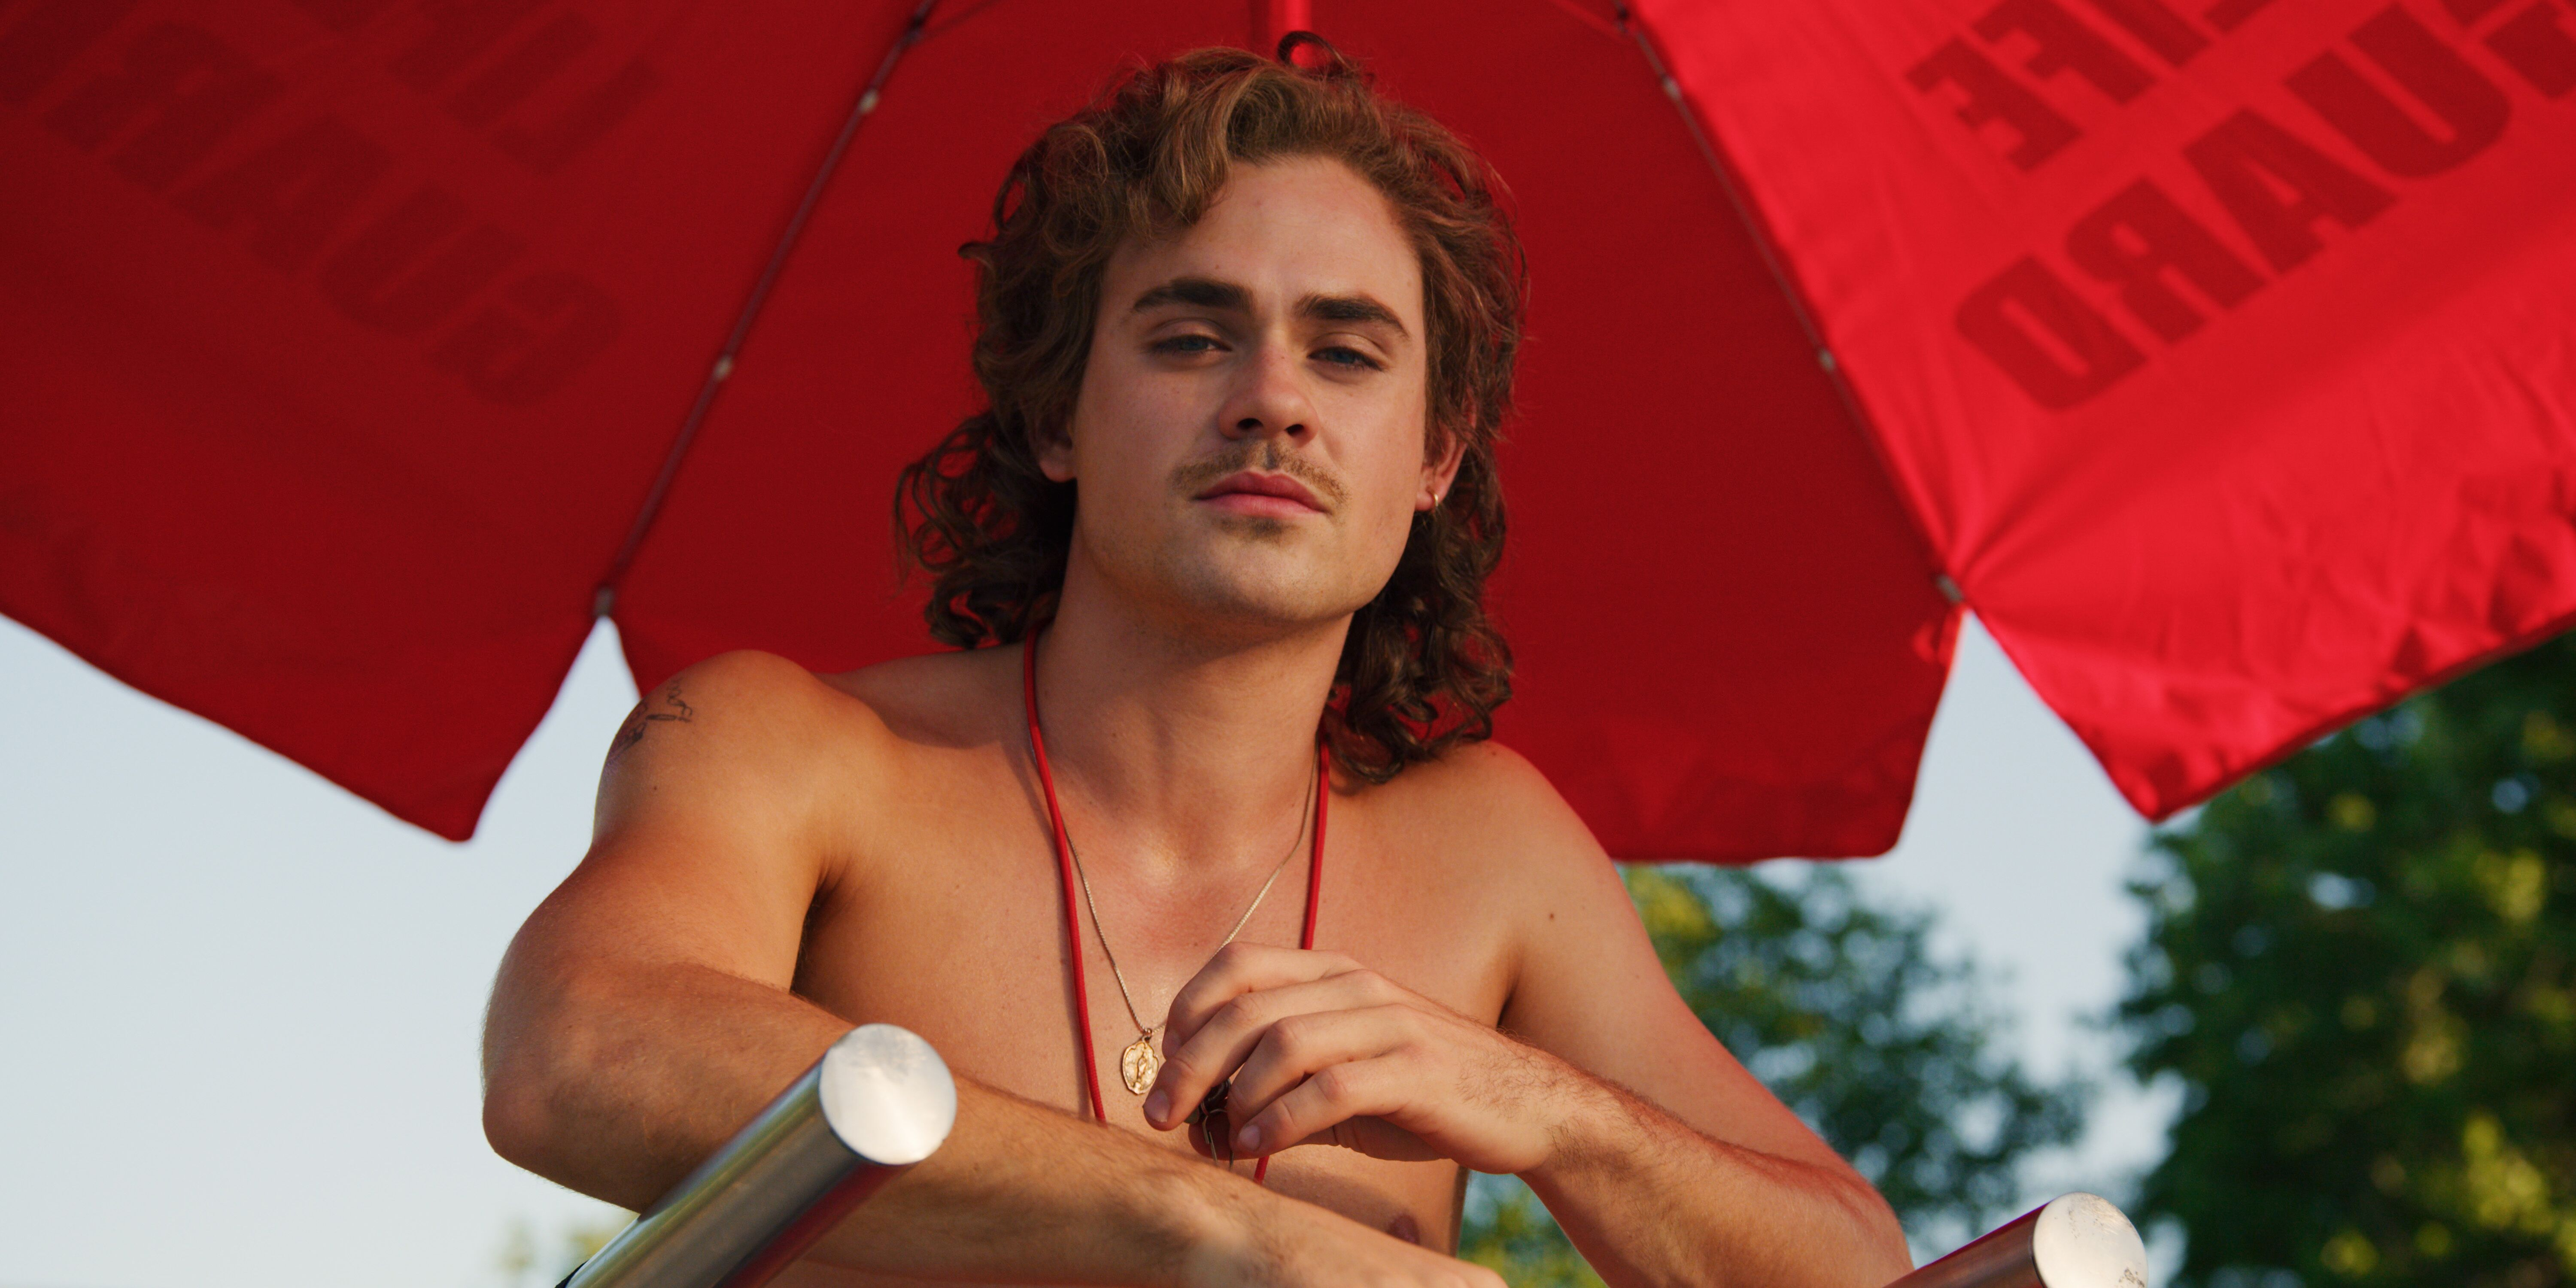 Stranger Things' Dacre Montgomery is now the most popular celebrity in the world!